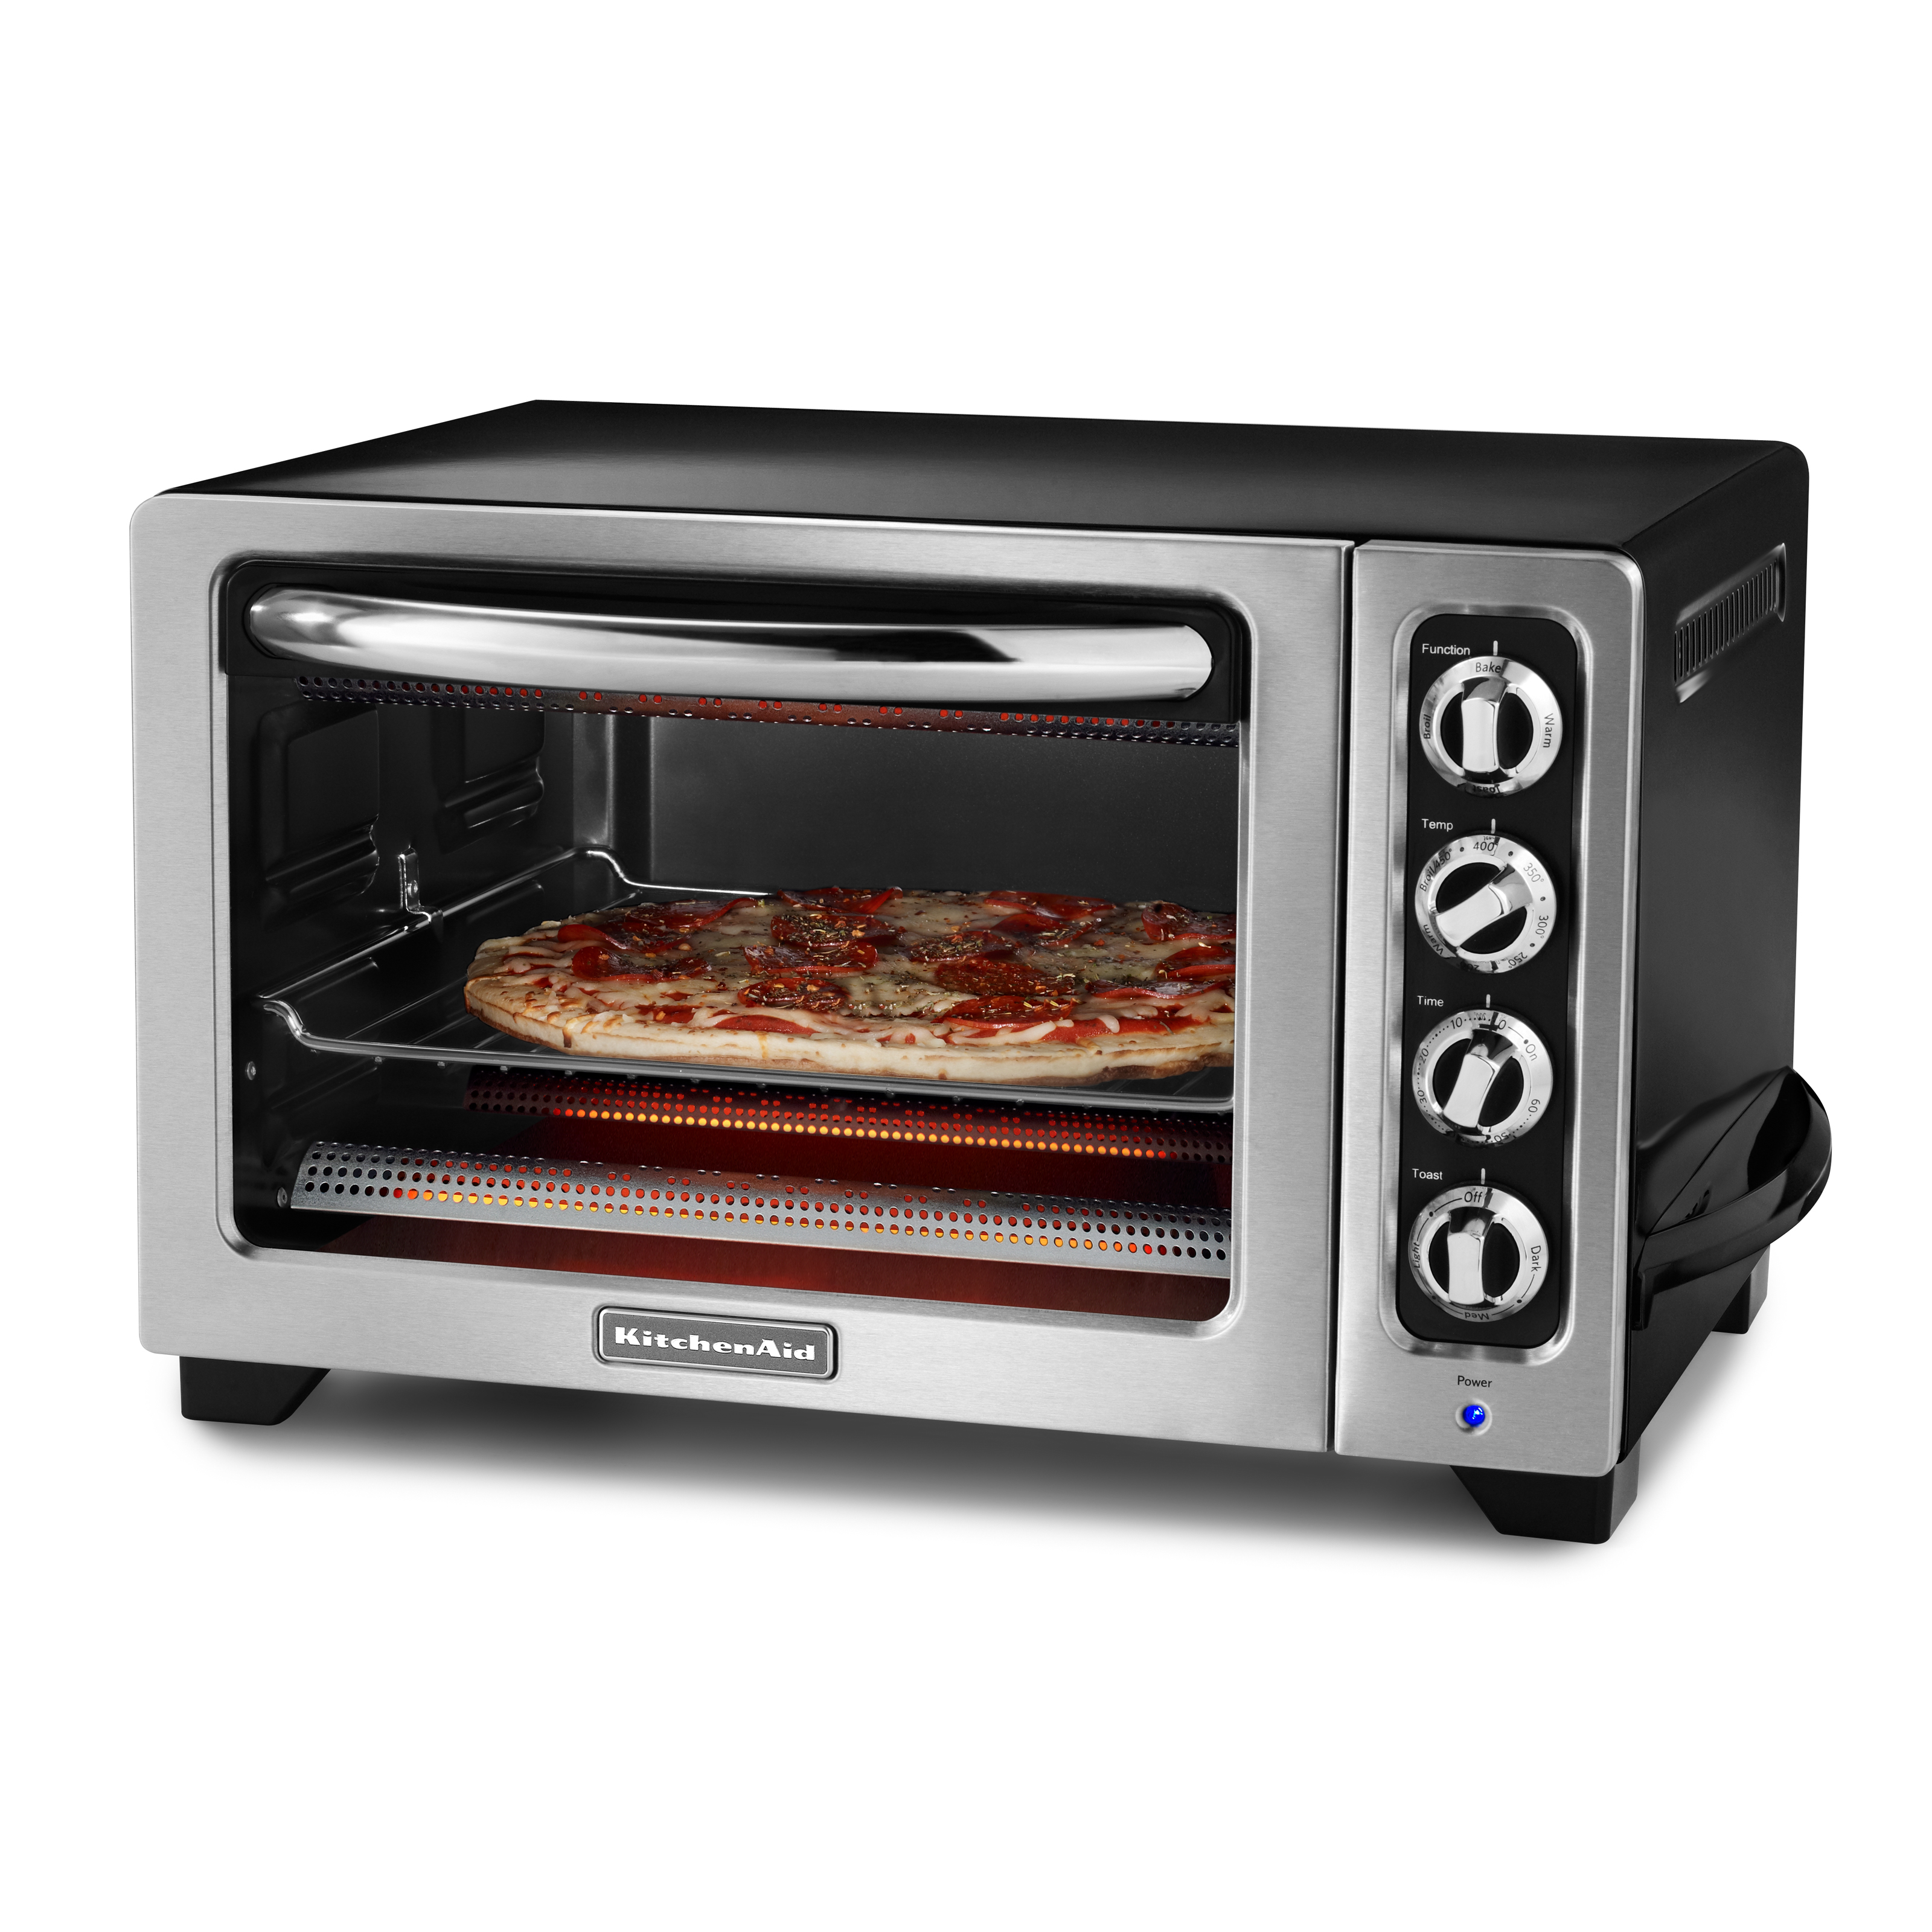 Countertop Oven : ... KCO222OB Countertop Toaster Oven - Toaster Ovens at Hayneedle